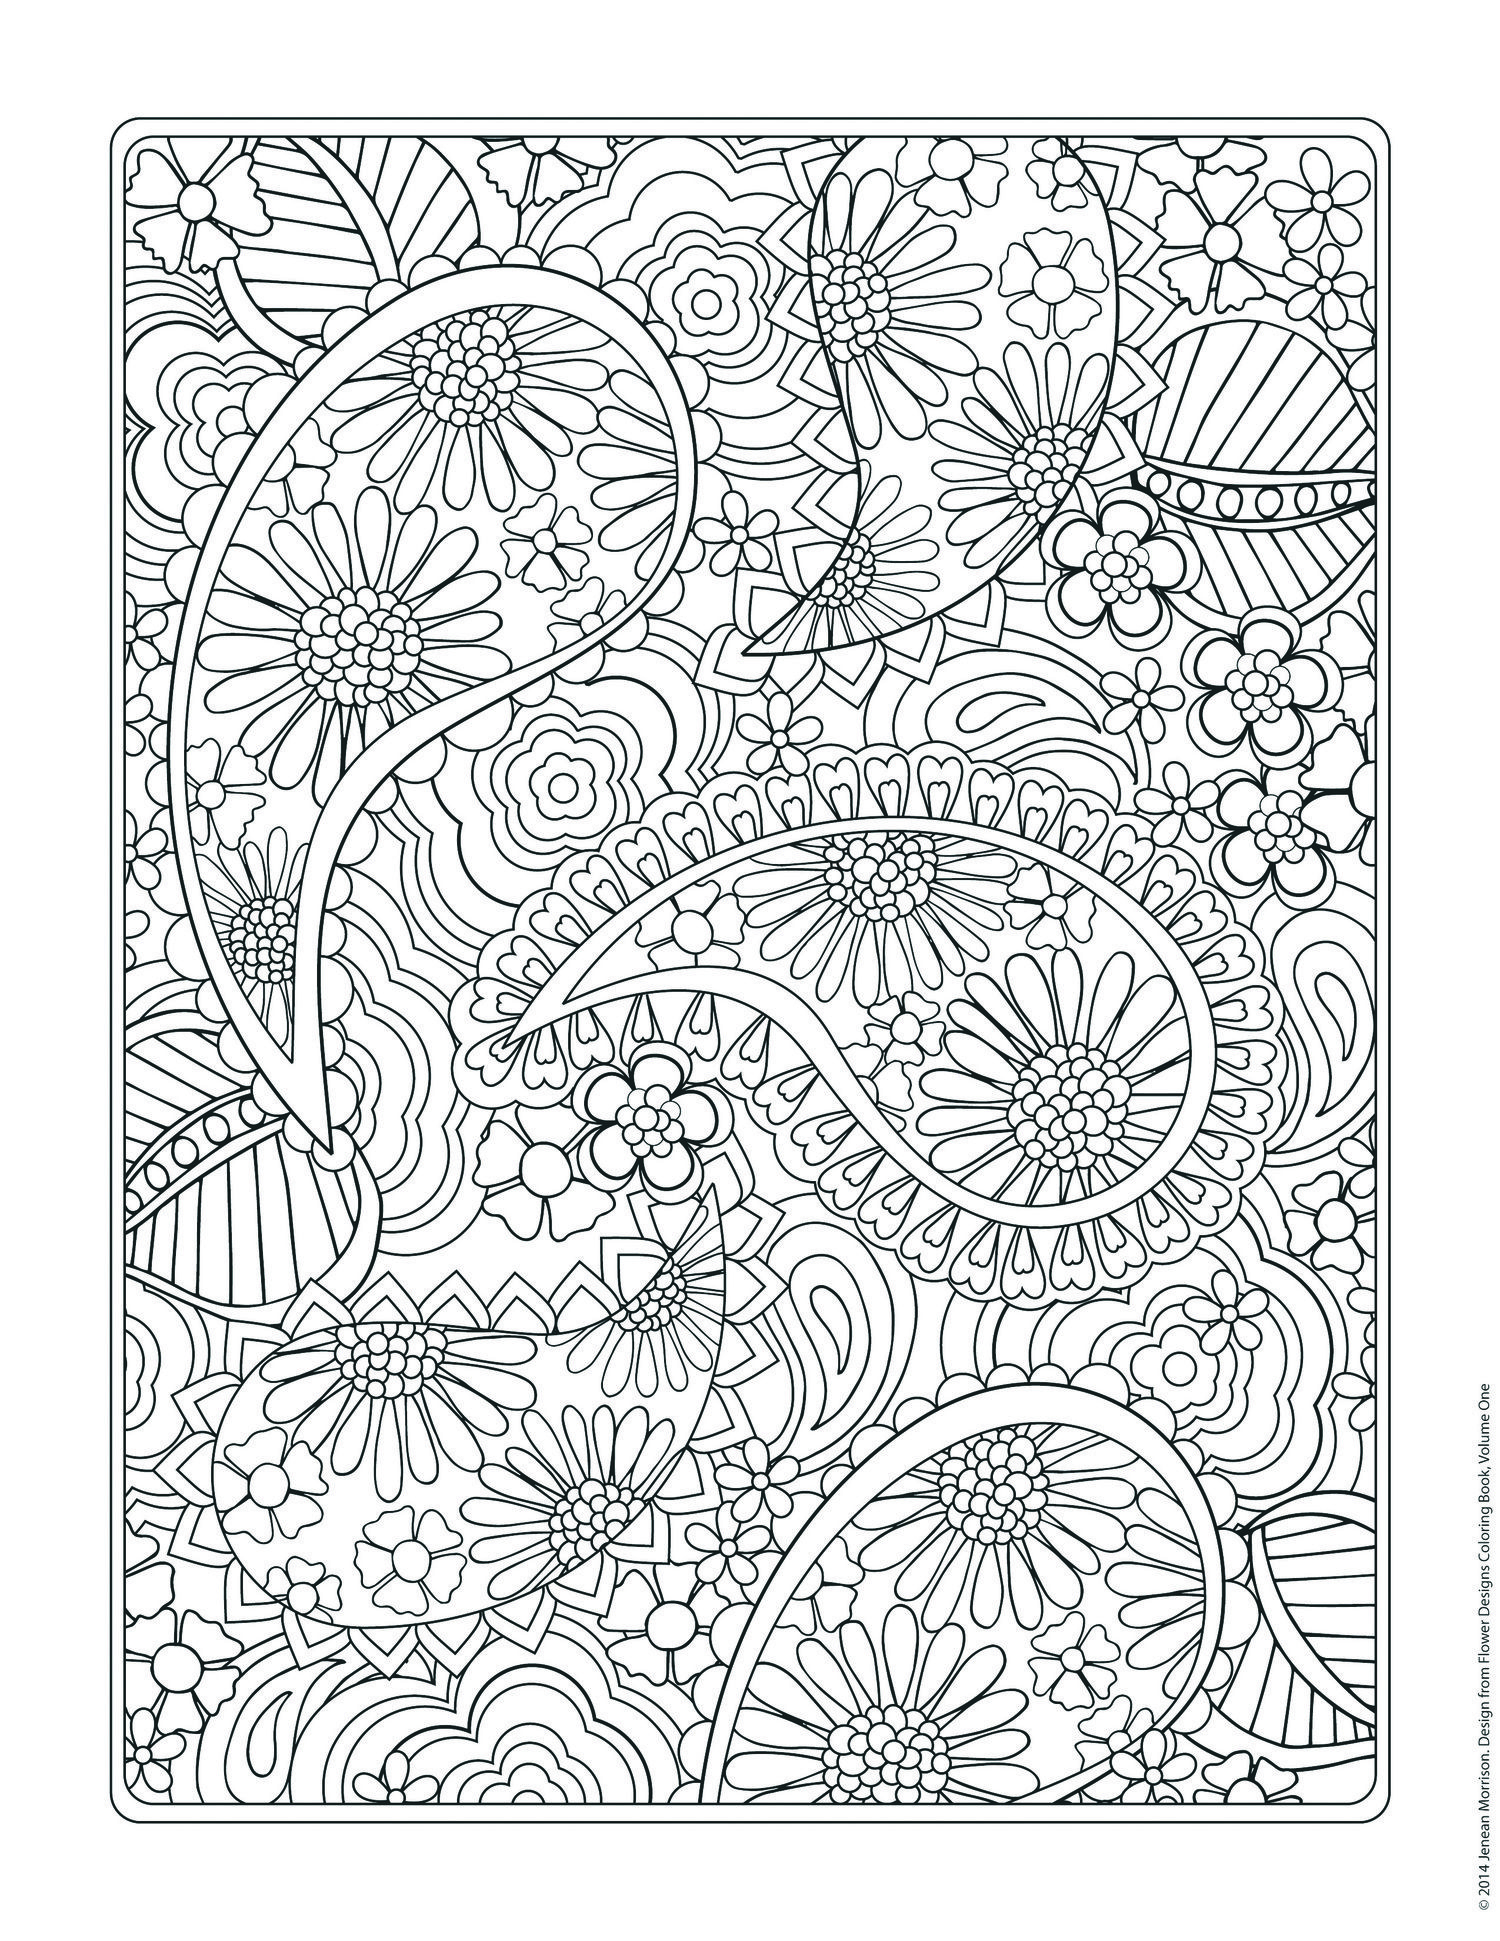 Free Coloring Page From Jenean Morrison S Flower Designs Coloring